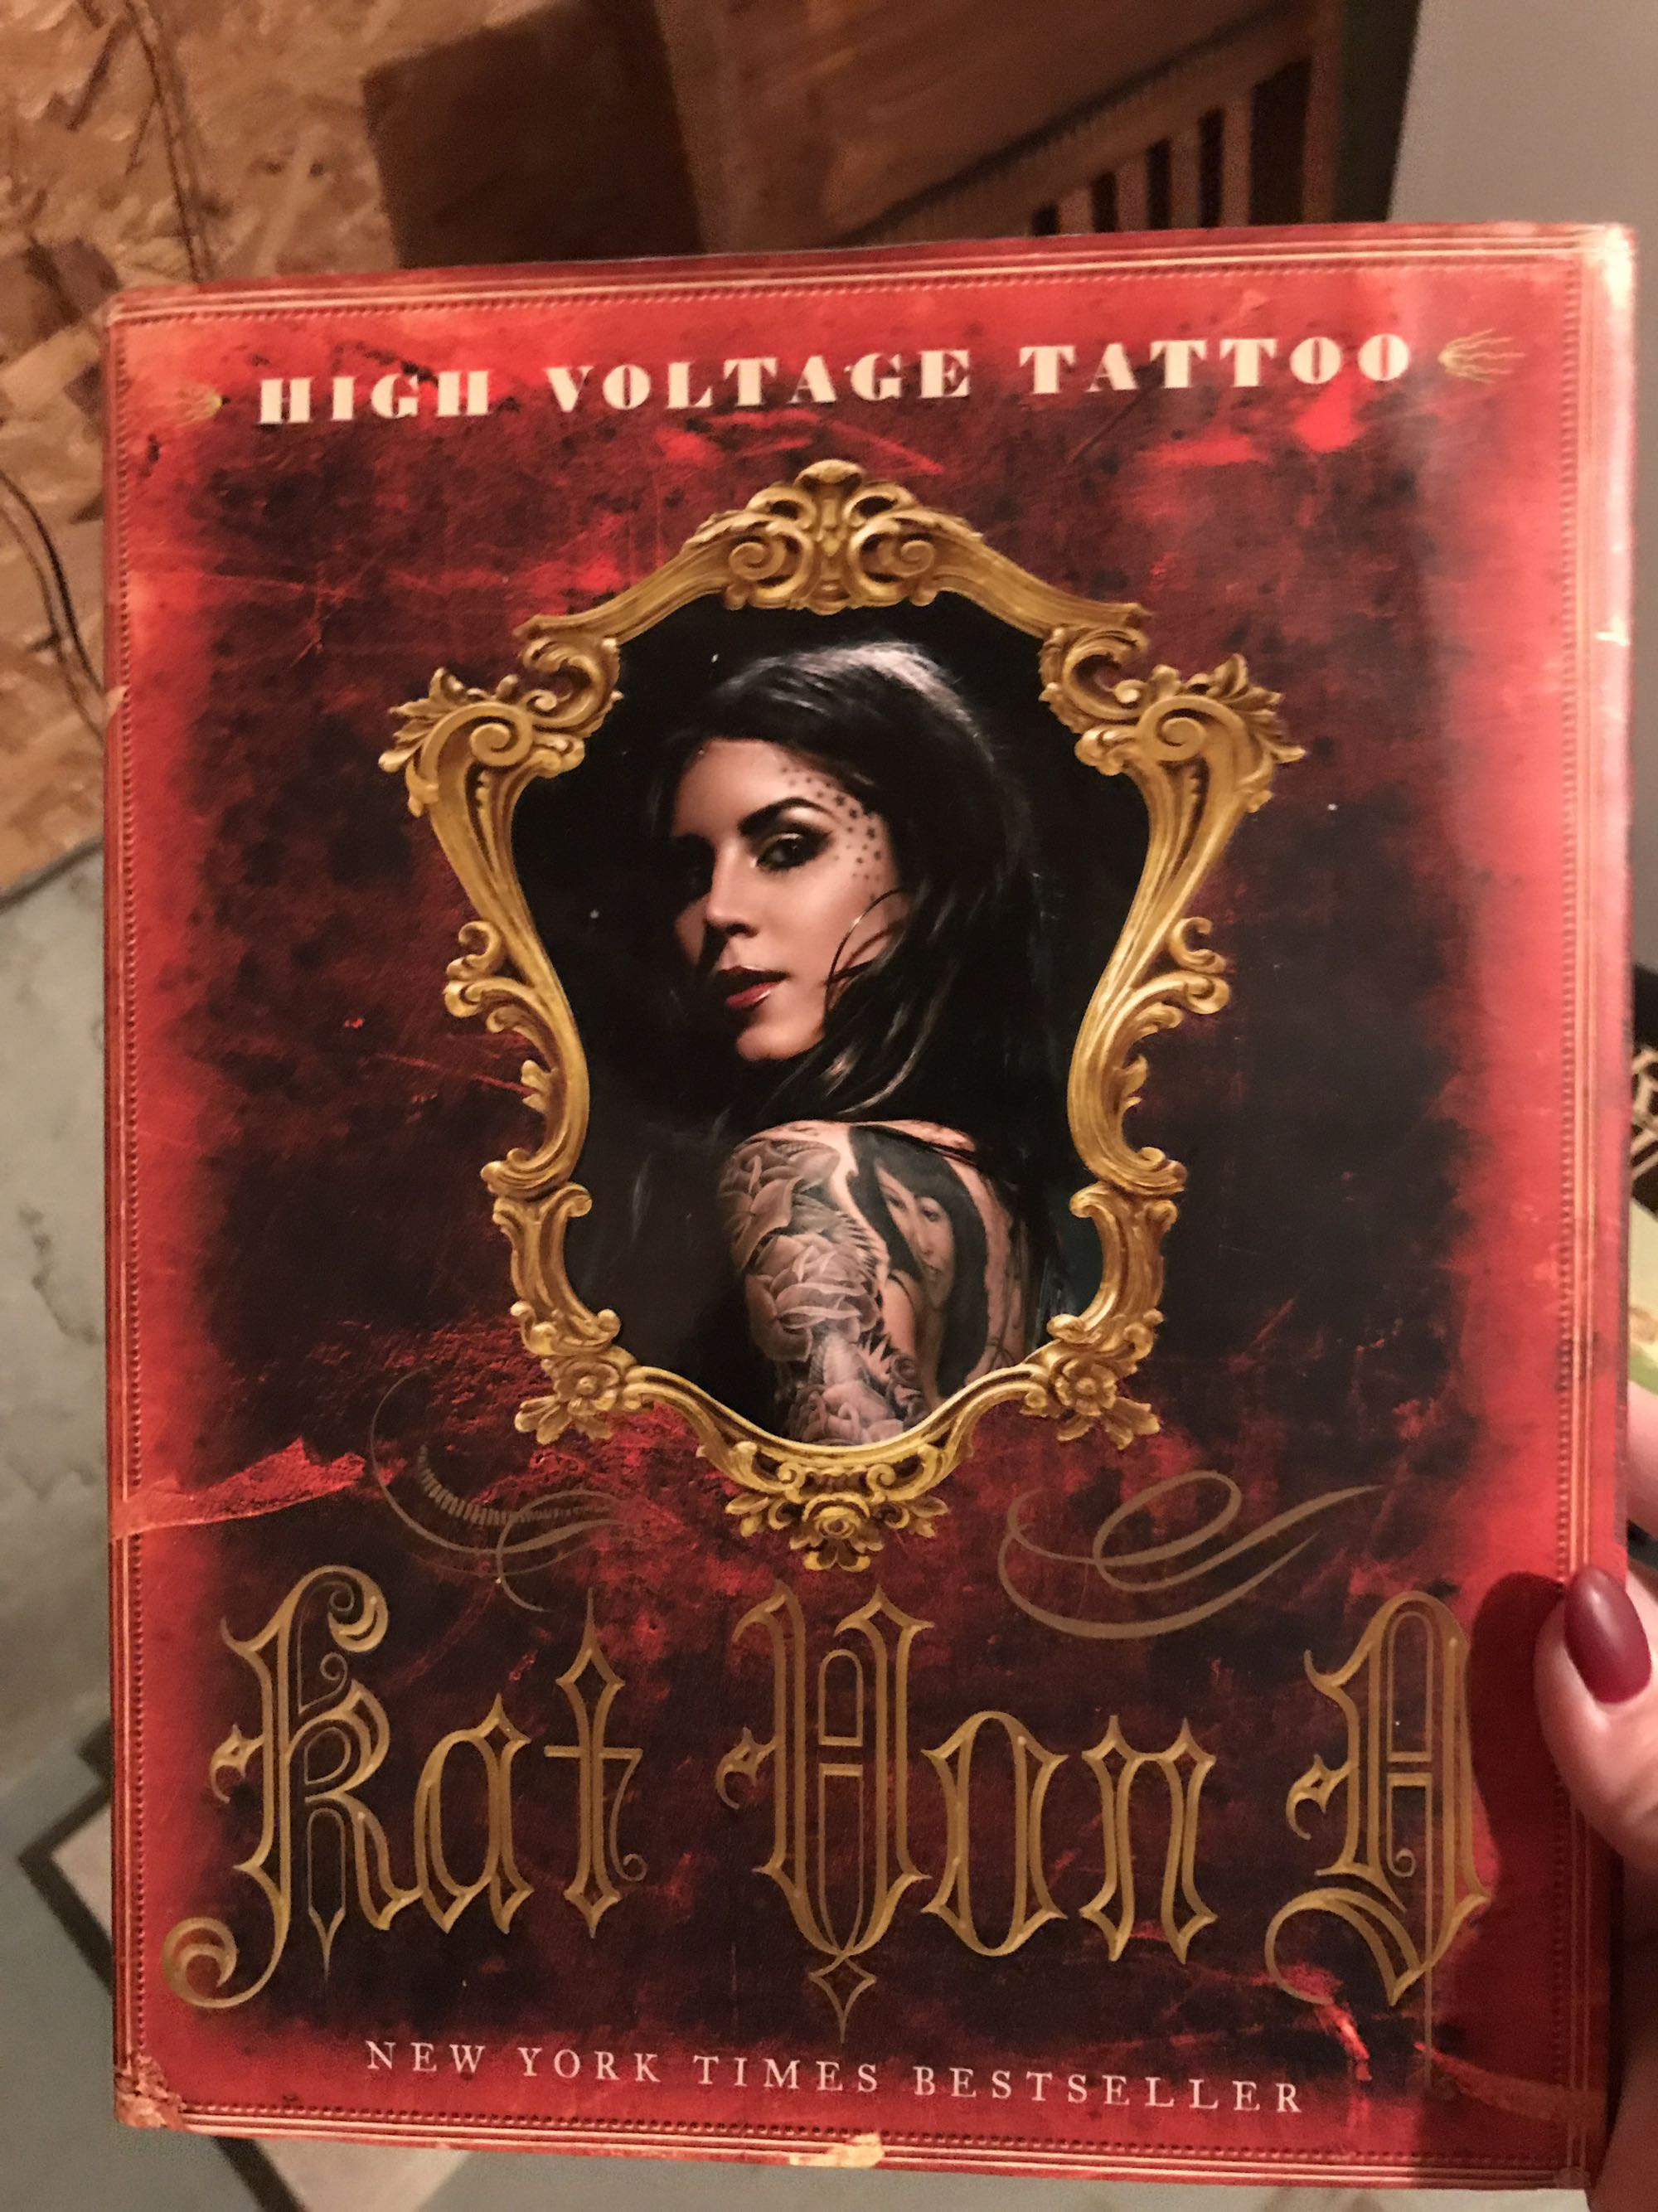 High voltage tattoo book- Kat Von D